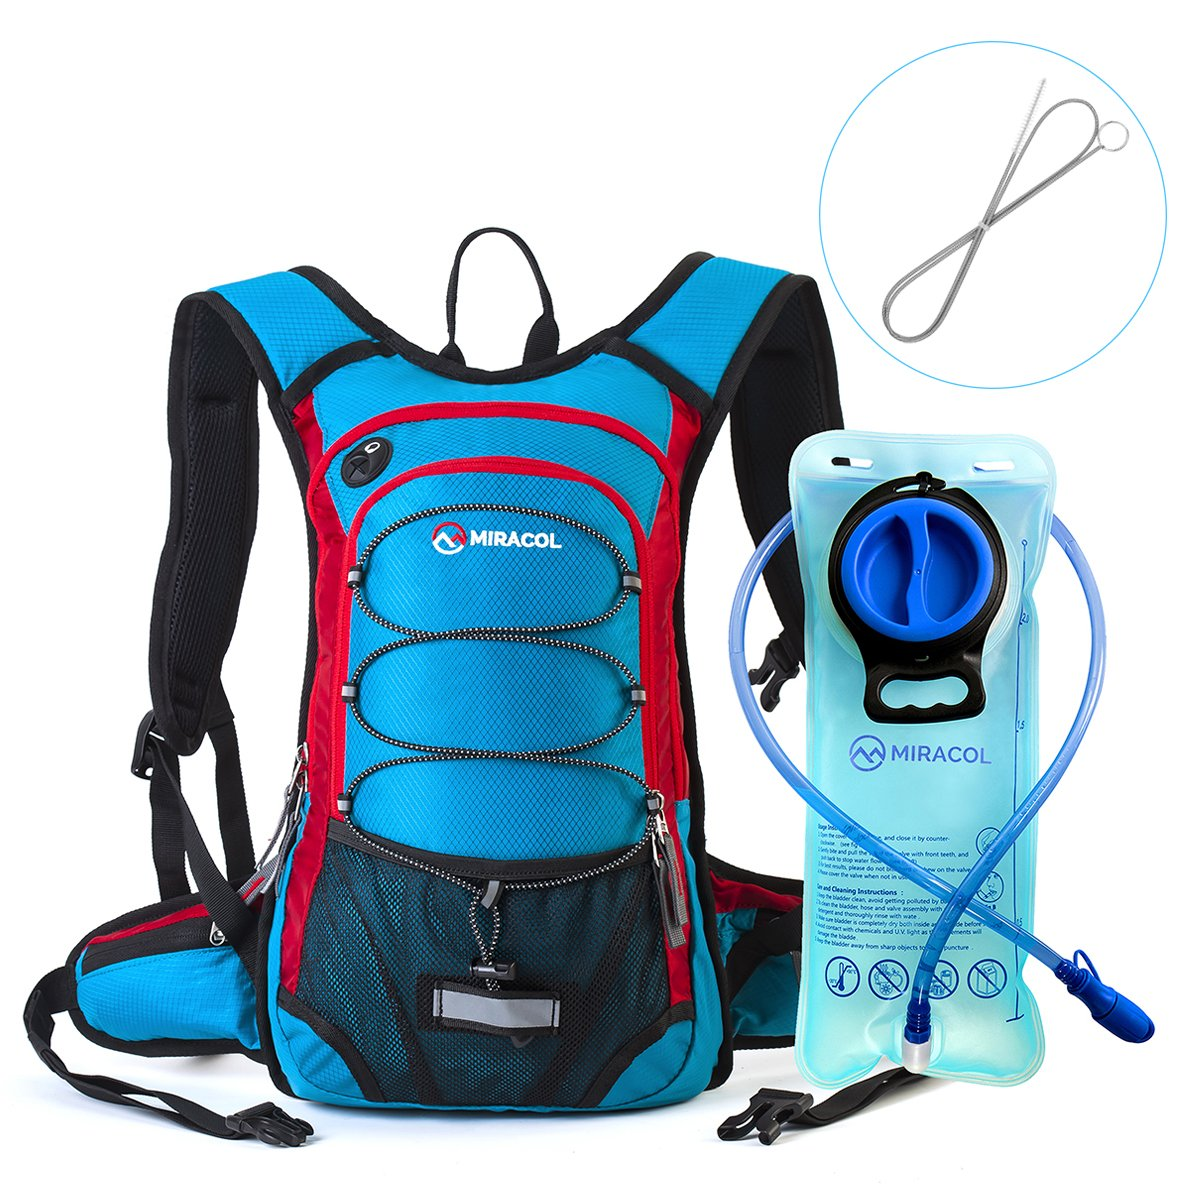 MIRACOL Hydration Backpack with 2L Water Bladder and Long Tube Brush, Thermal Insulation Hydration Pack Keeps Liquid Cool up to 4 Hours, Perfect Outdoor Gear for Hiking, Running, Camping, Cycling